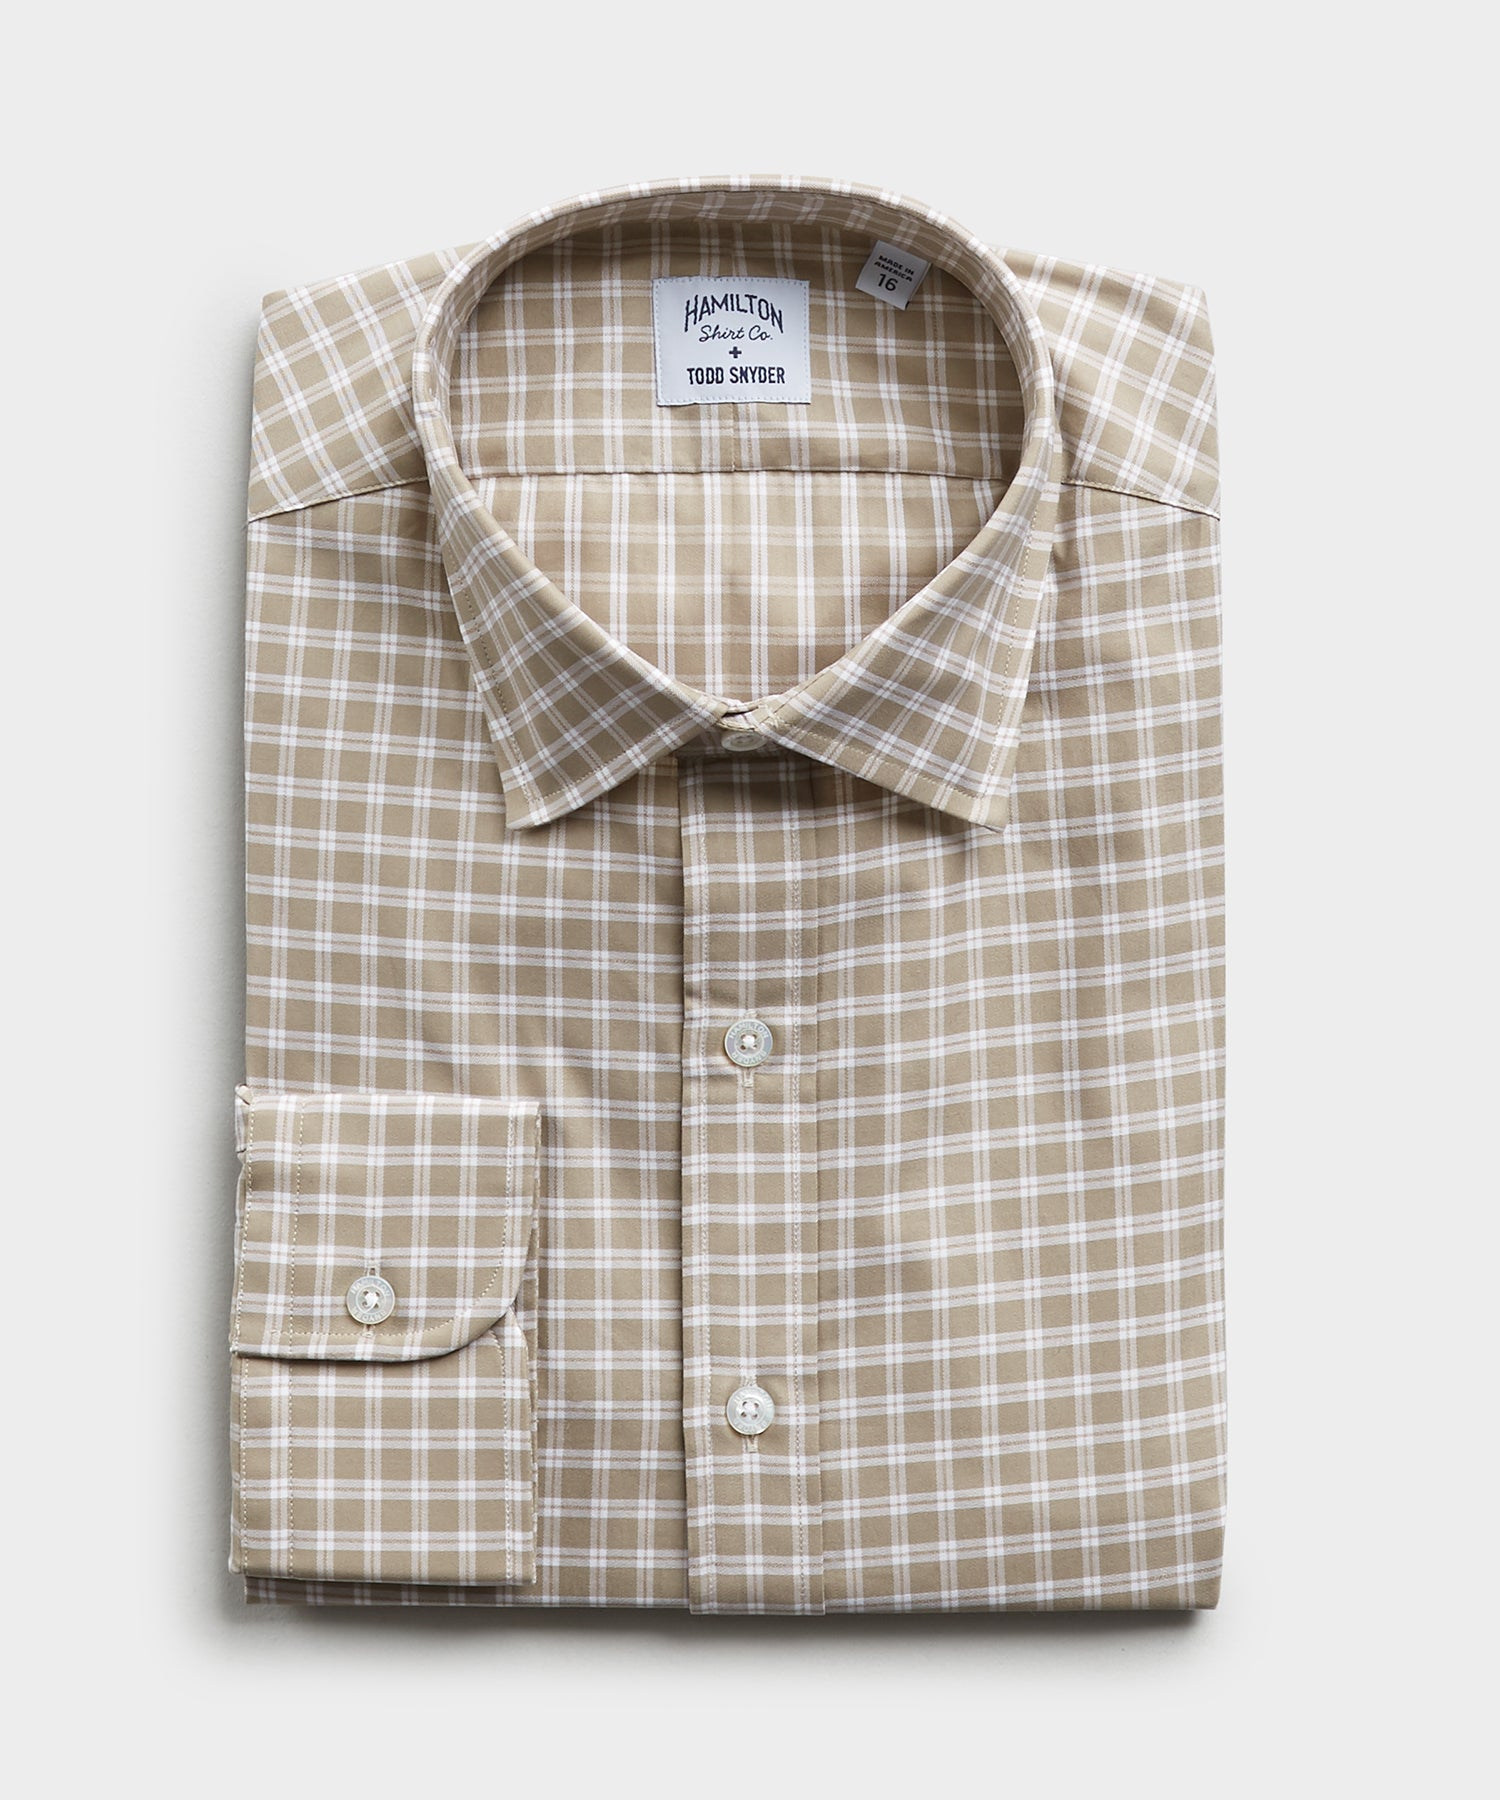 Made in the USA Hamilton + Todd Snyder Wallace Plaid Shirt in Tan